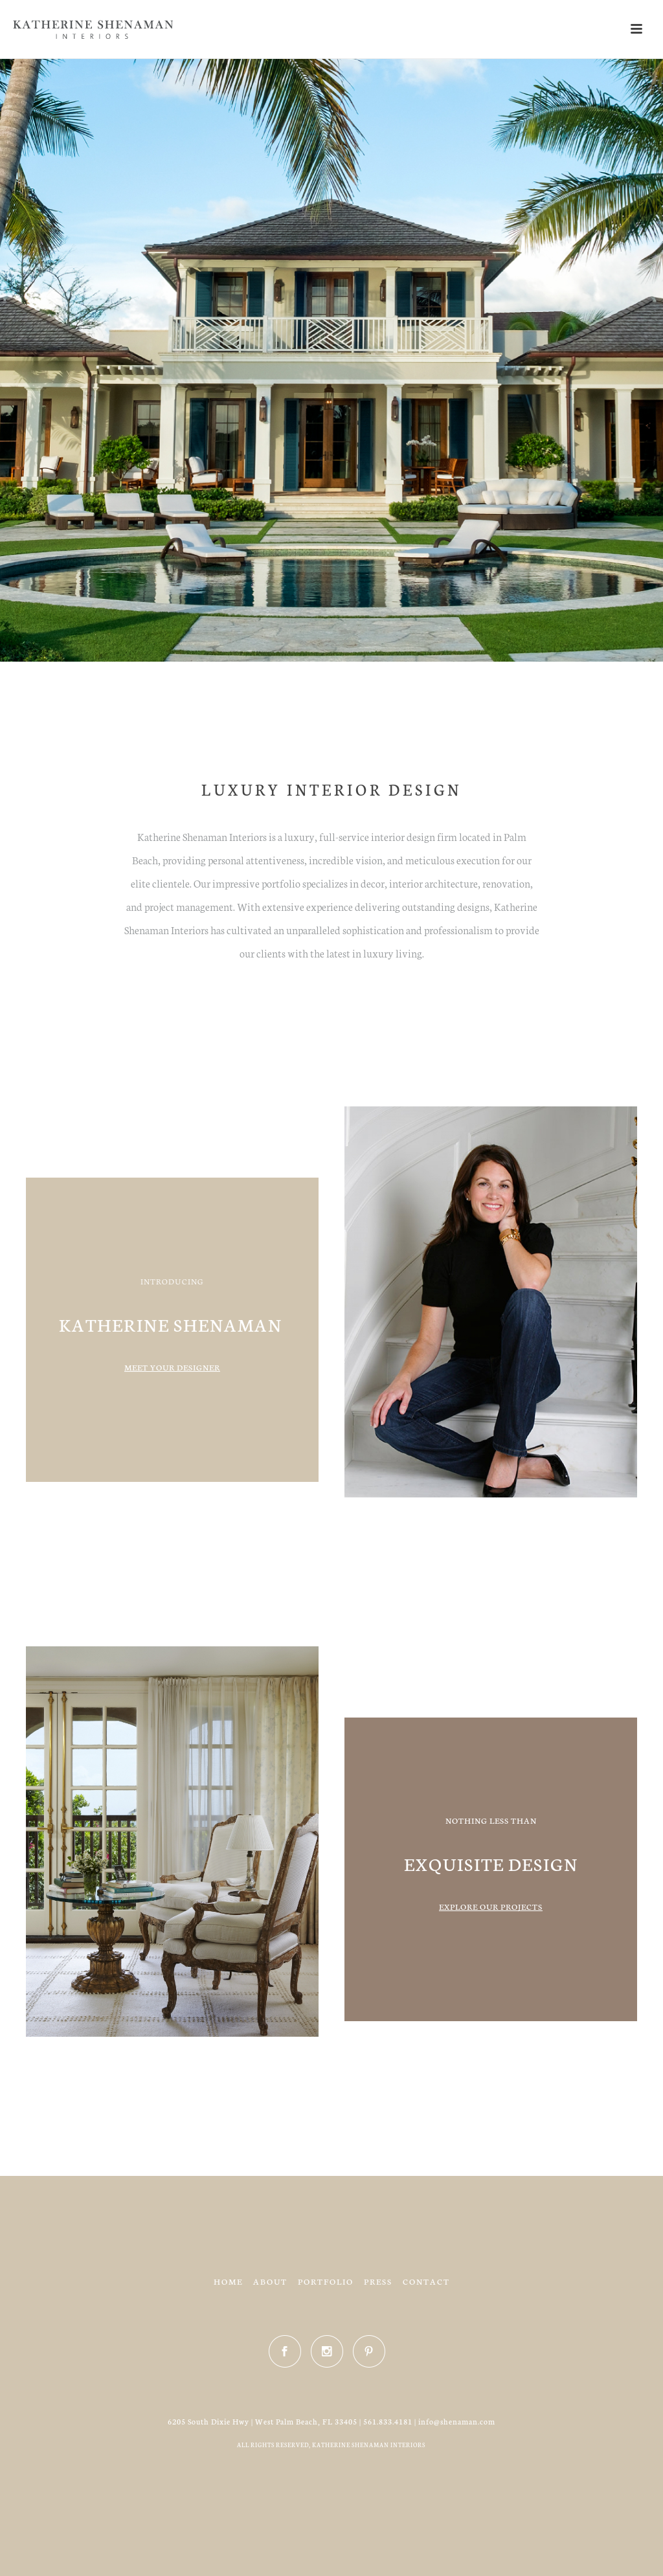 Katherine Shenaman Interiors Competitors Revenue And Employees